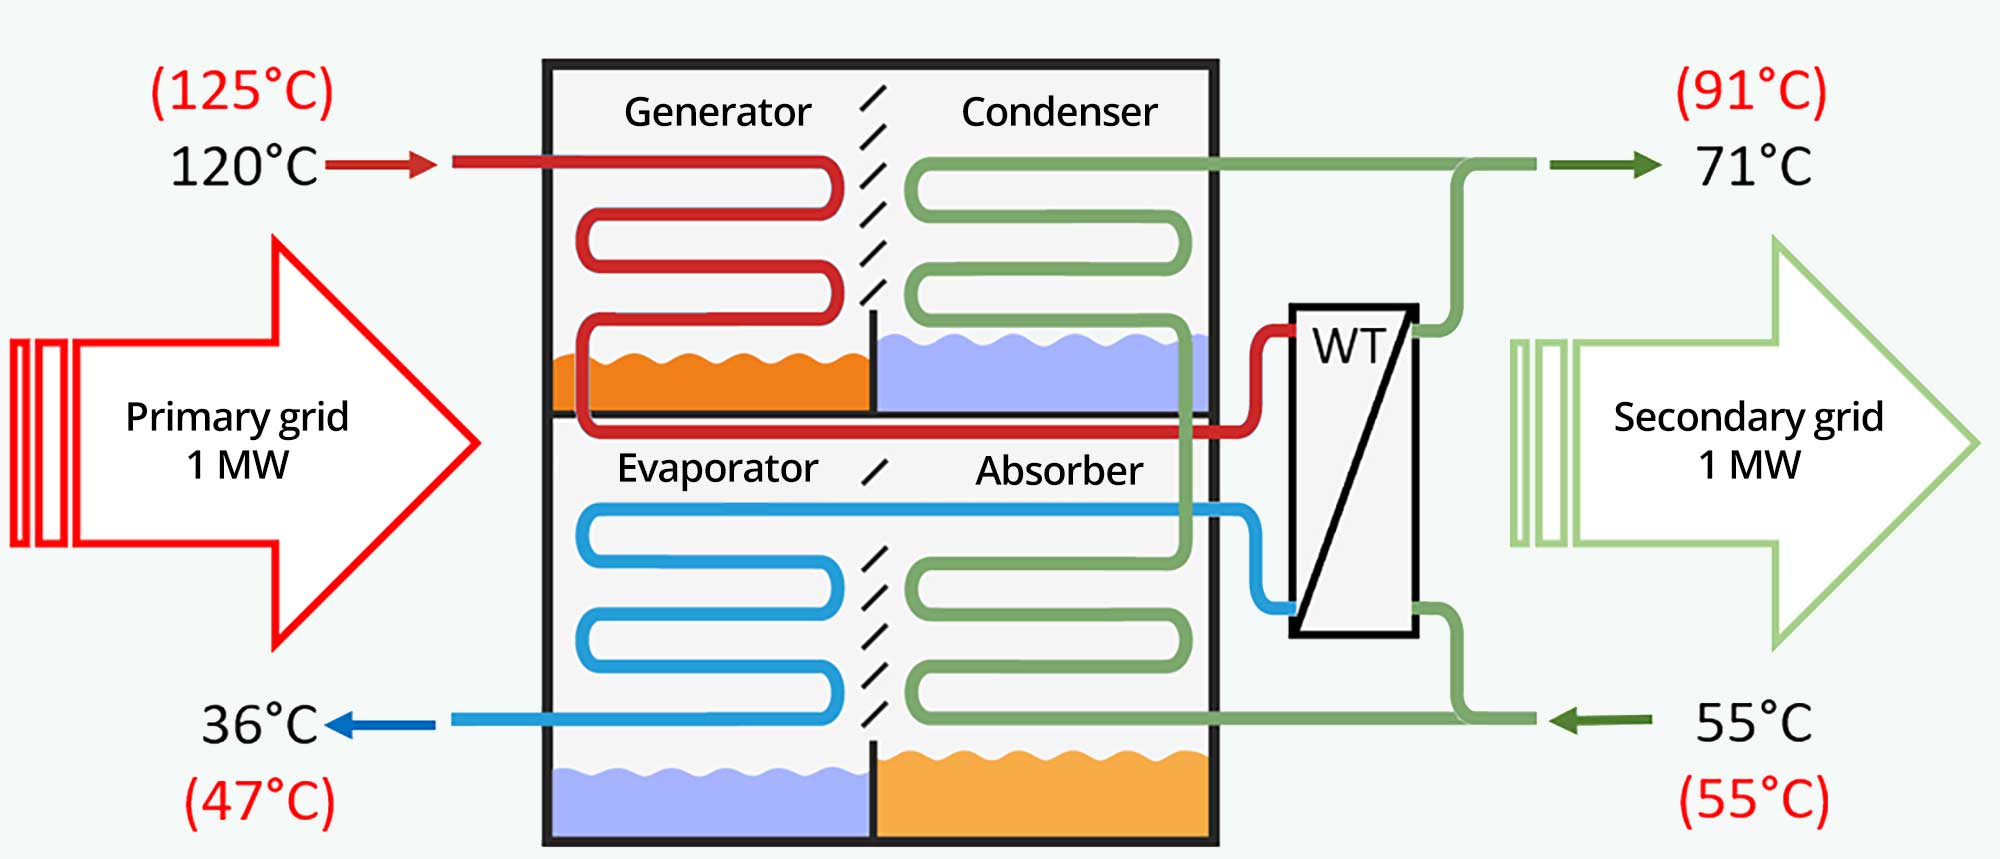 Absorption heat exchangers